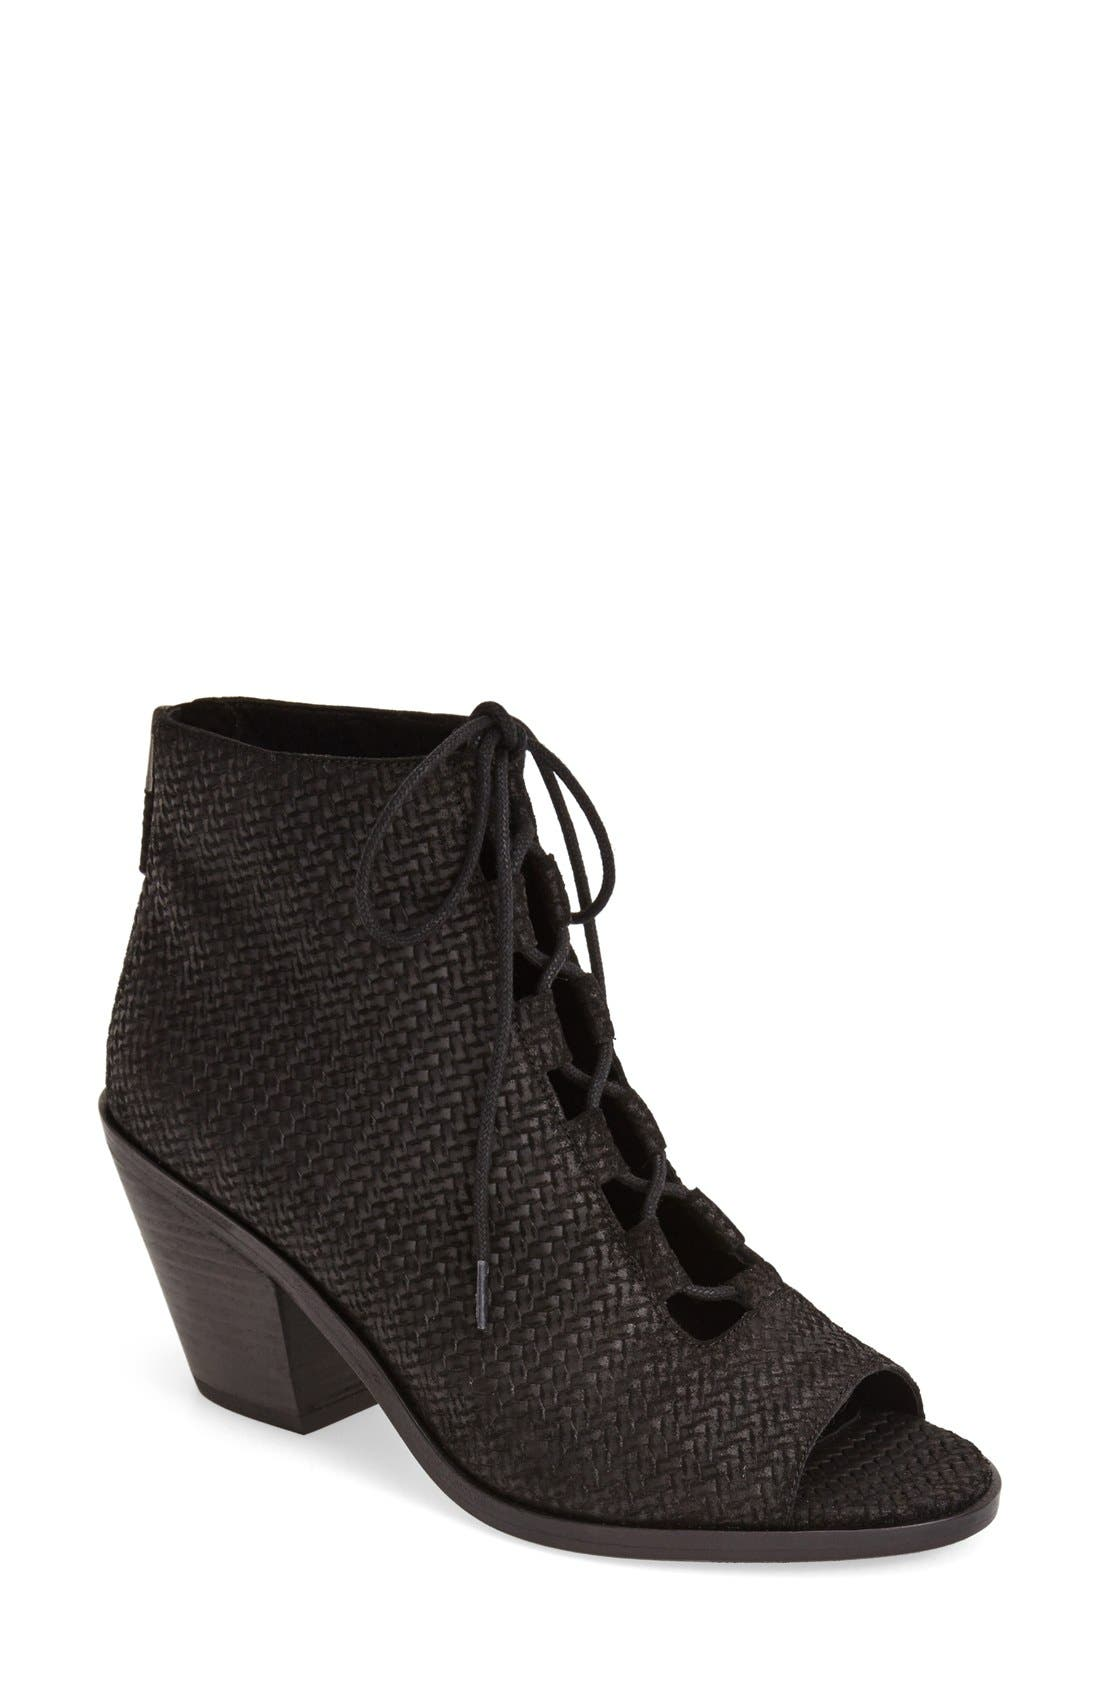 'Slew' Lace Up Bootie, Main, color, 001